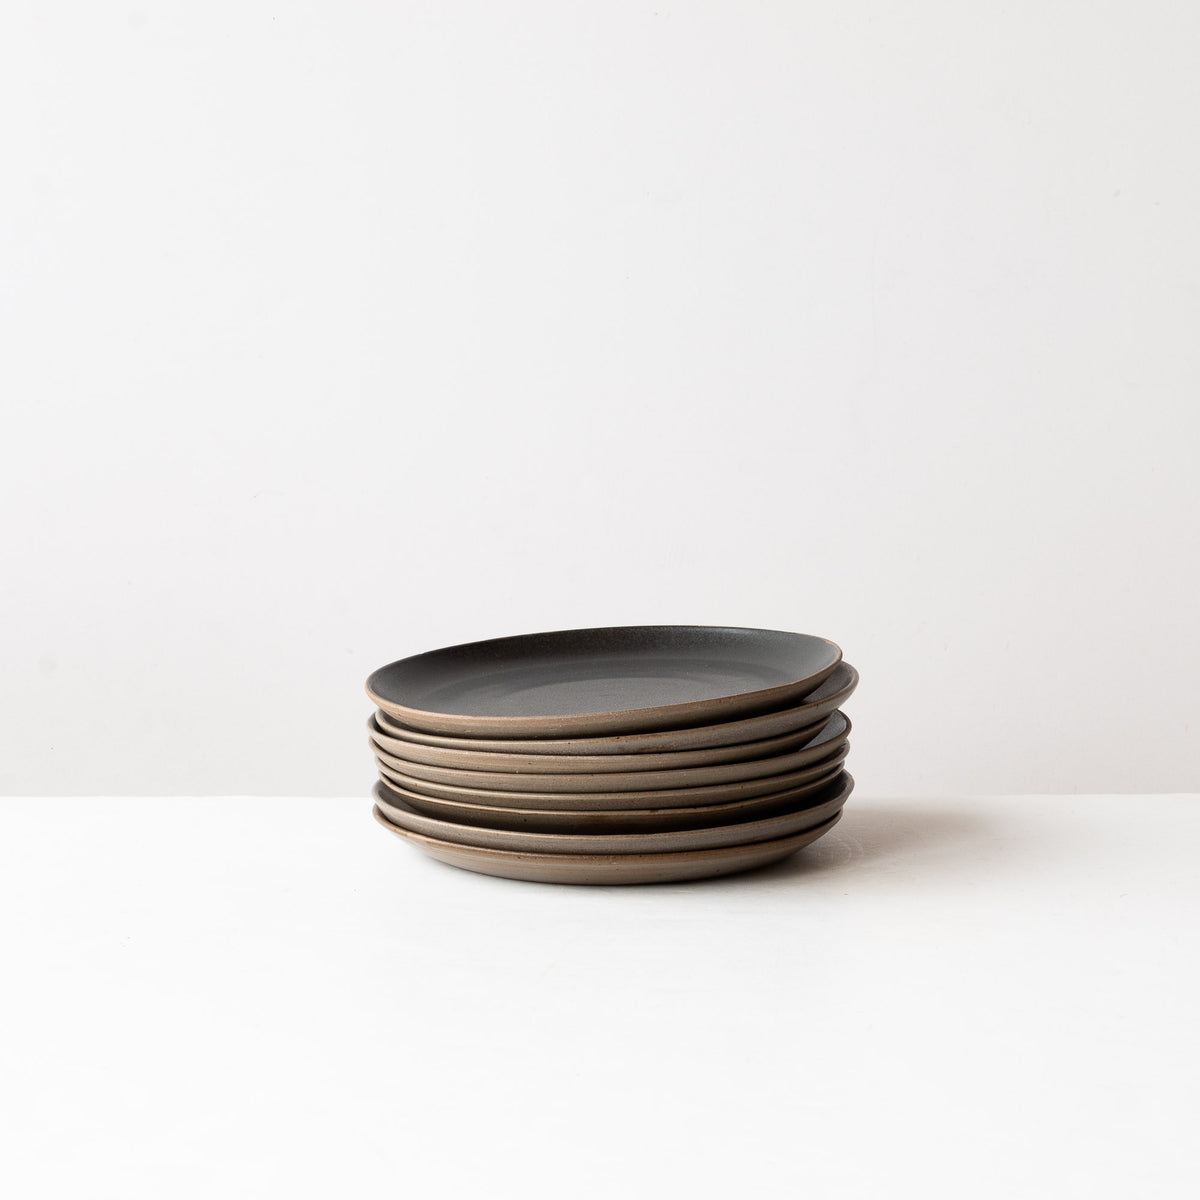 Matte Black & Taupe - Handmade Grey Stoneware Small Plates - Sold by Chic & Basta